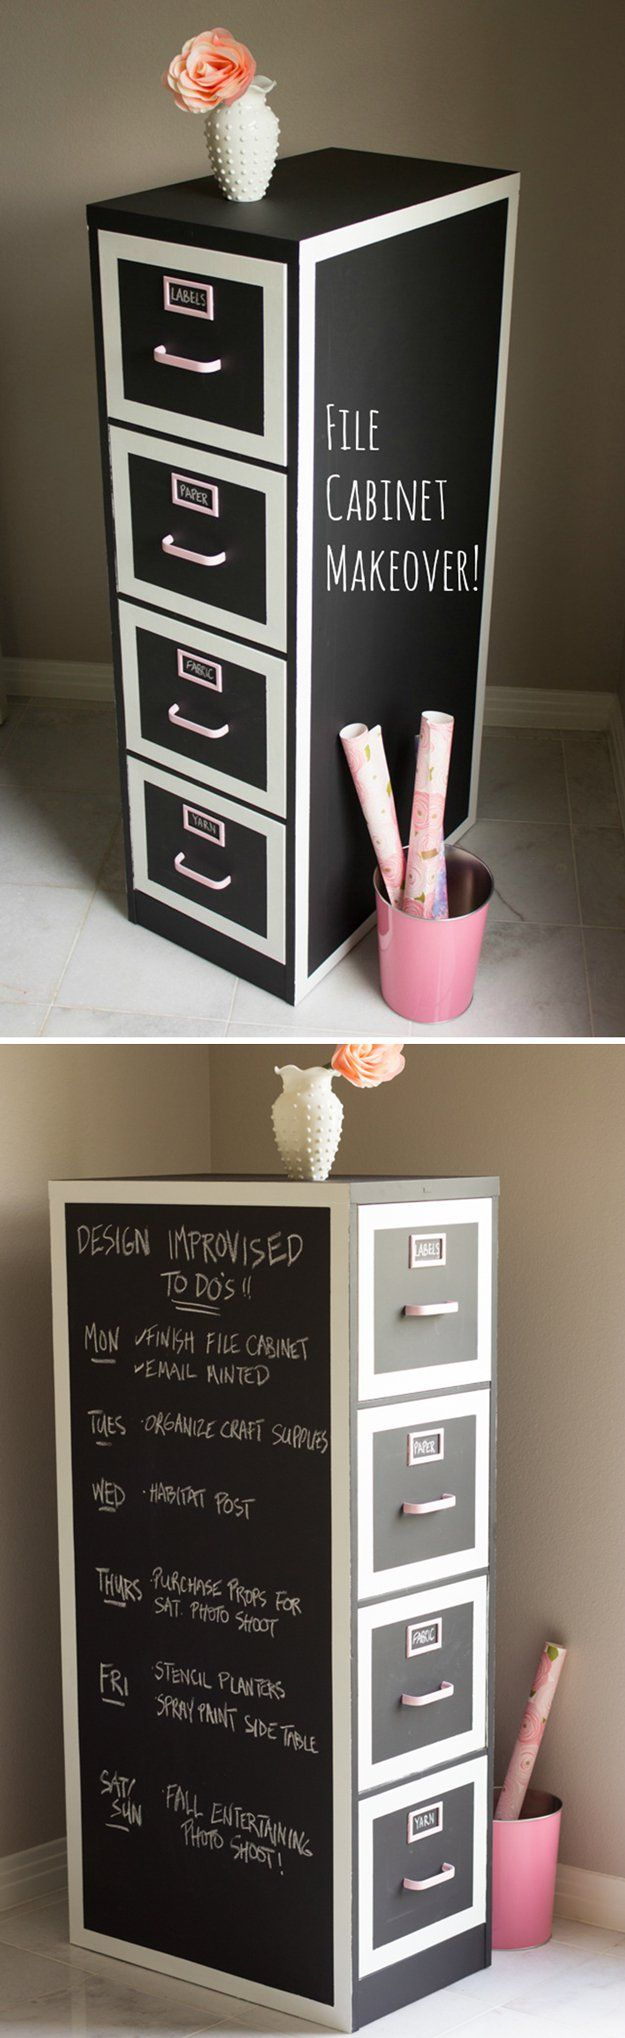 DIY Cabinets Makeover with Chalk Paint | https://diyprojects.com/16-more-diy-chalk-paint-furniture-ideas/